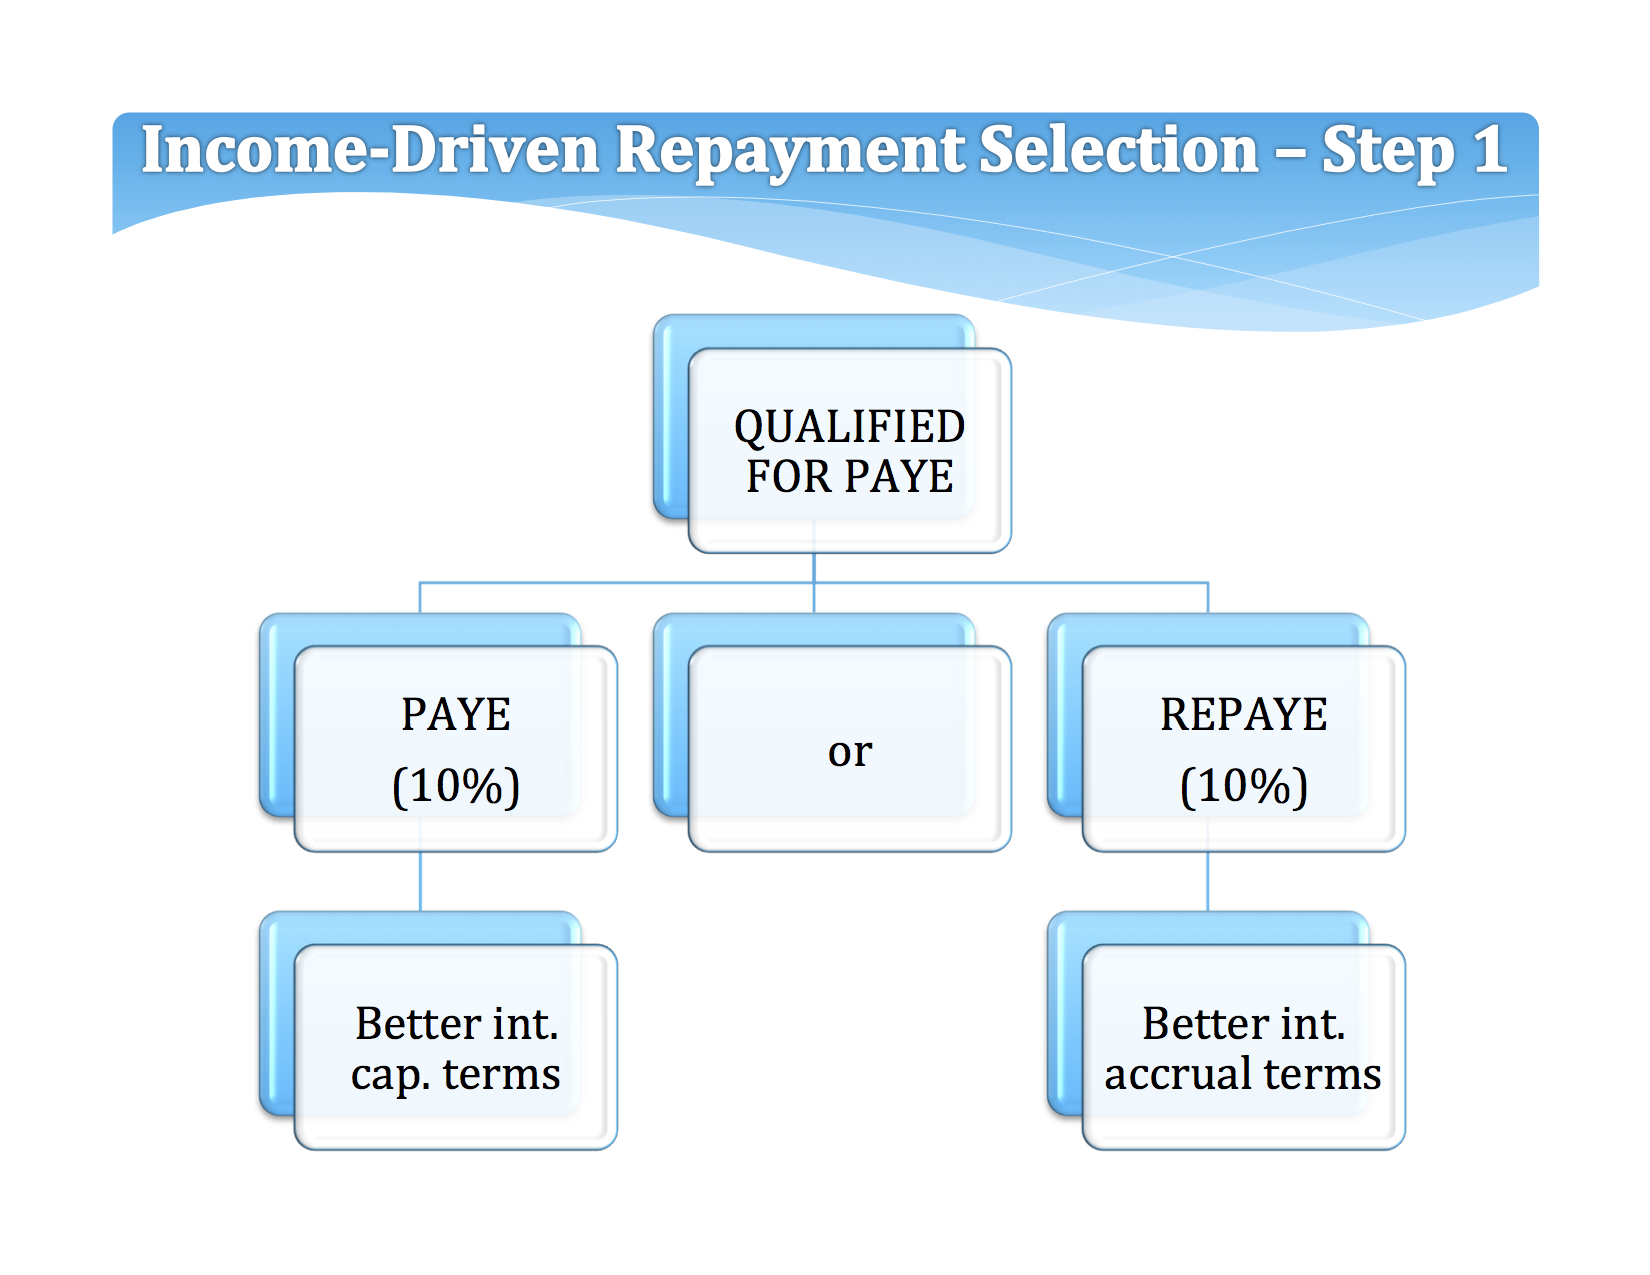 PAYE is normally the preferred choice because it offers the fastest way to debt forgiveness (20 years vs. 25 years), but REPAYE is more effective at reducing interest accrual costs. Avoid REPAYE if you are married filing taxes separately.